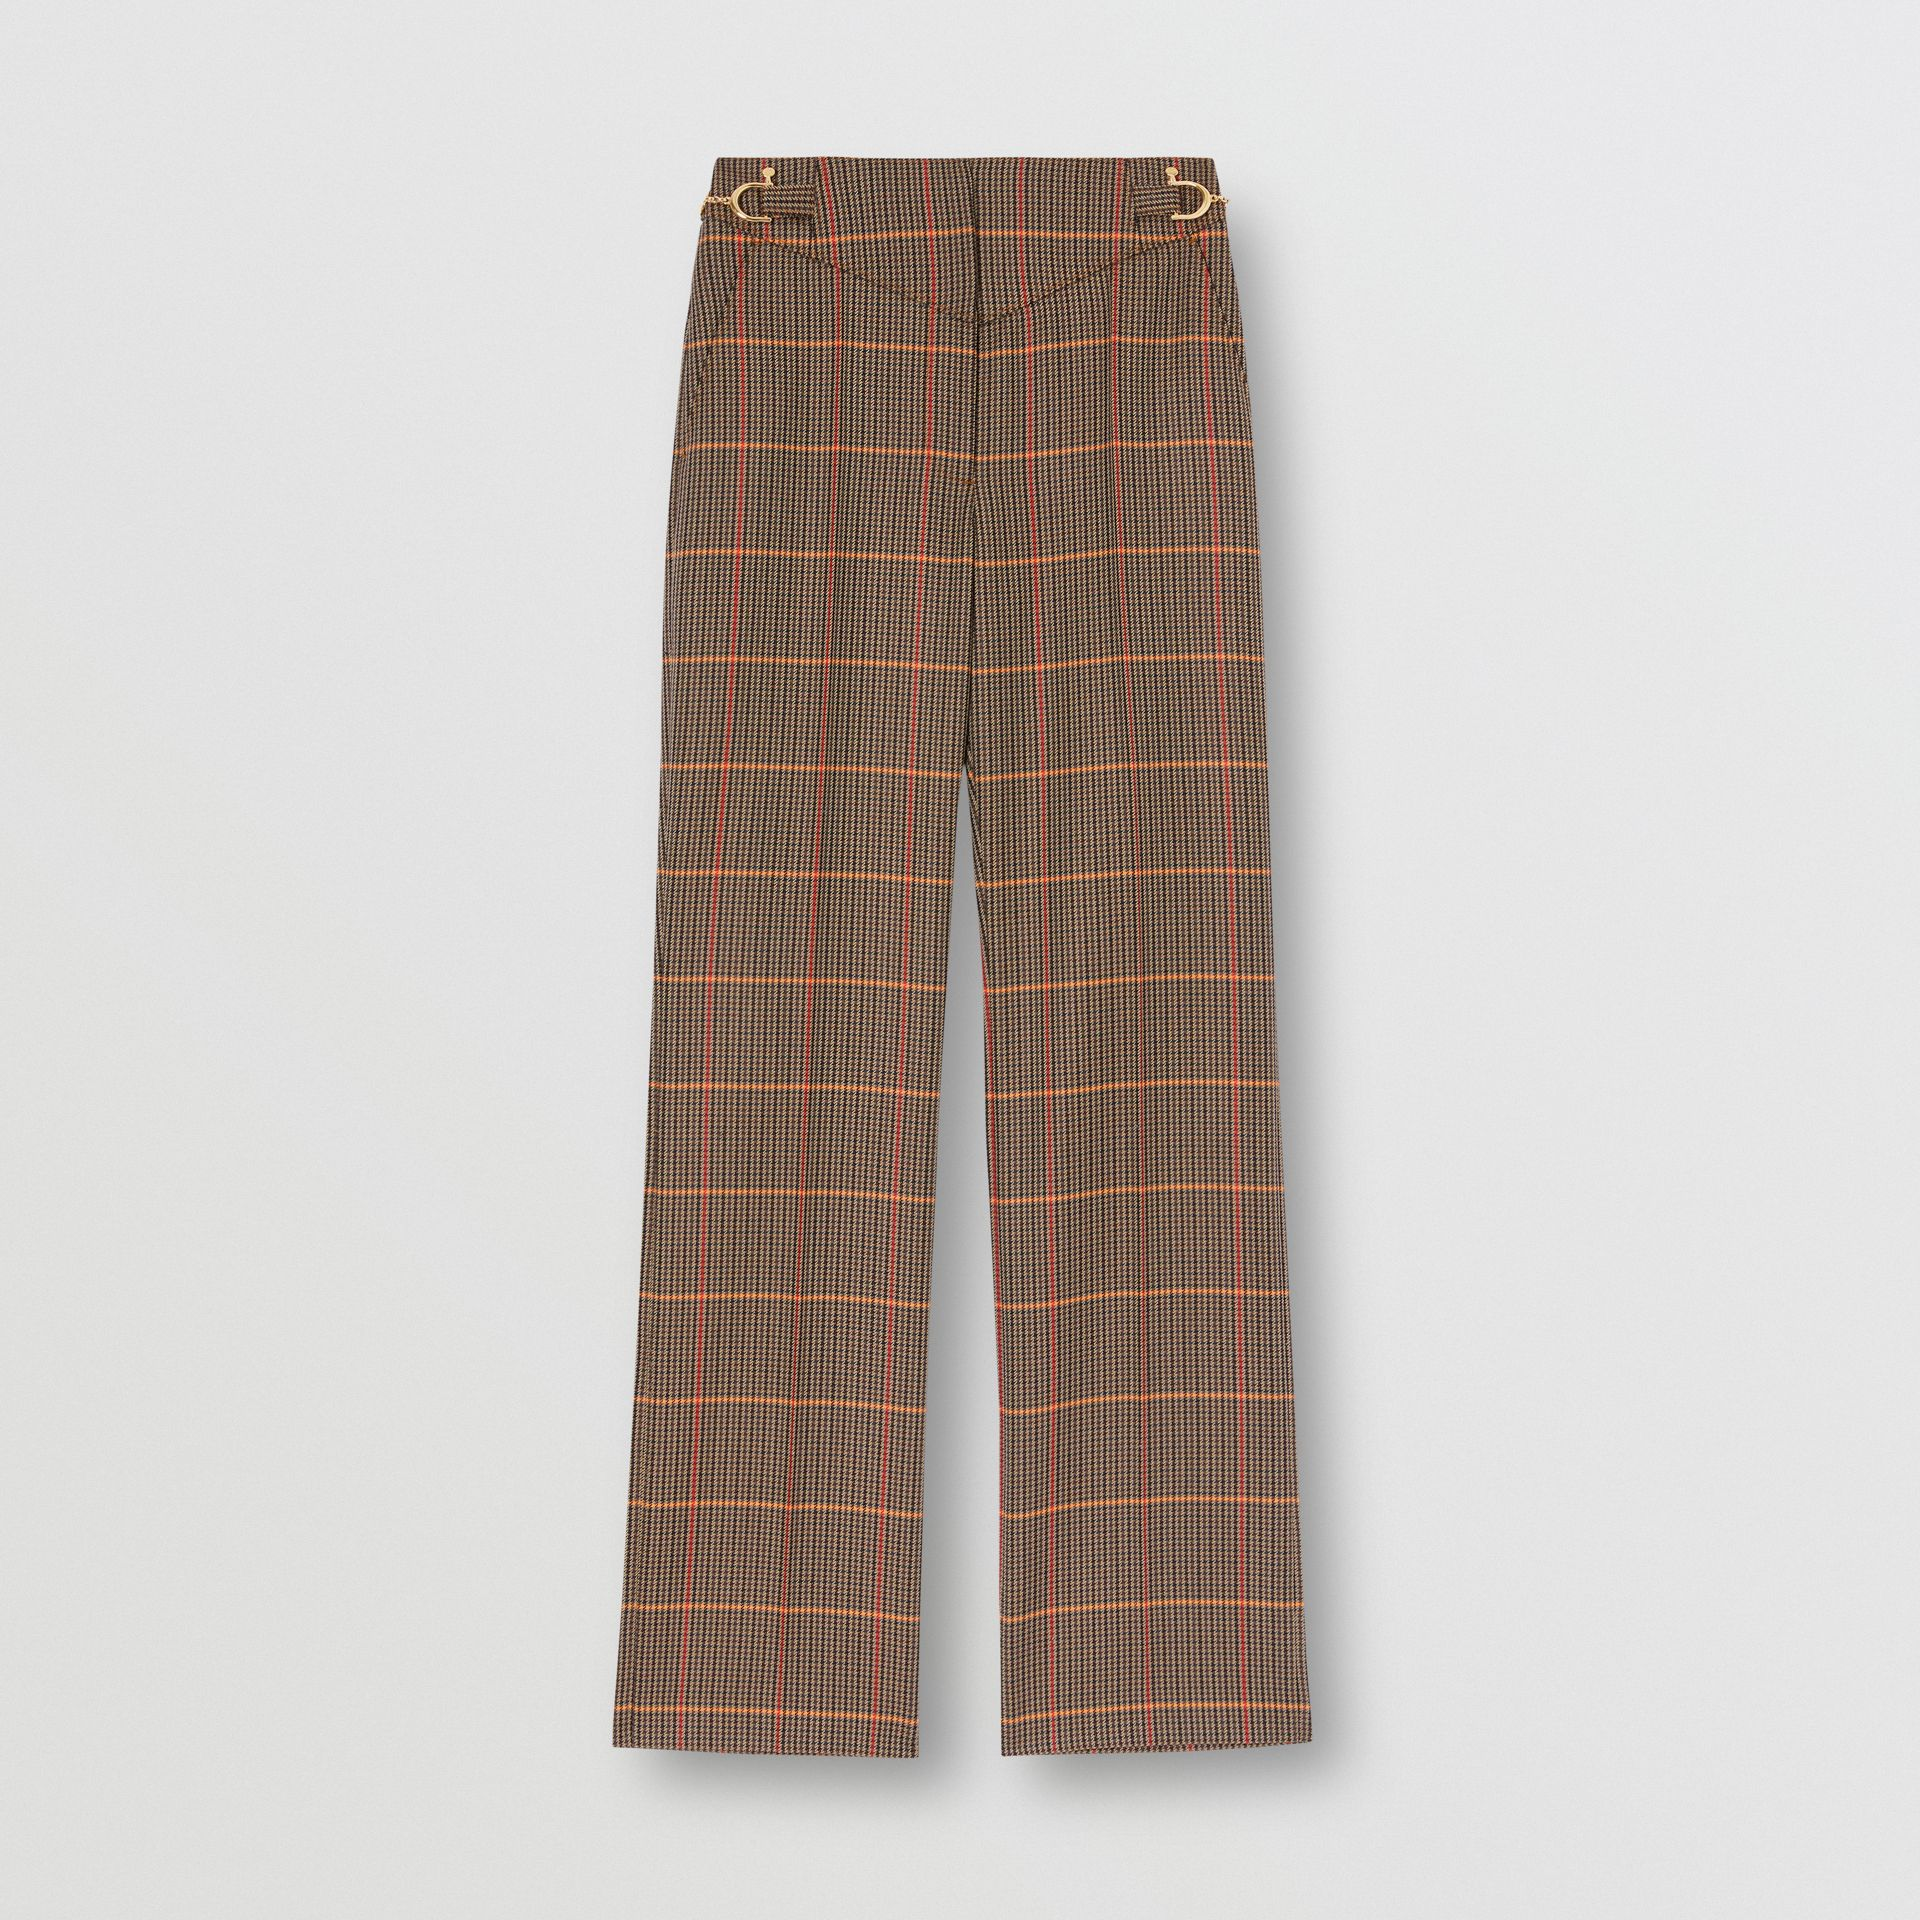 Houndstooth Check Wool Blend Tailored Trousers in Dark Brown - Women | Burberry - gallery image 3